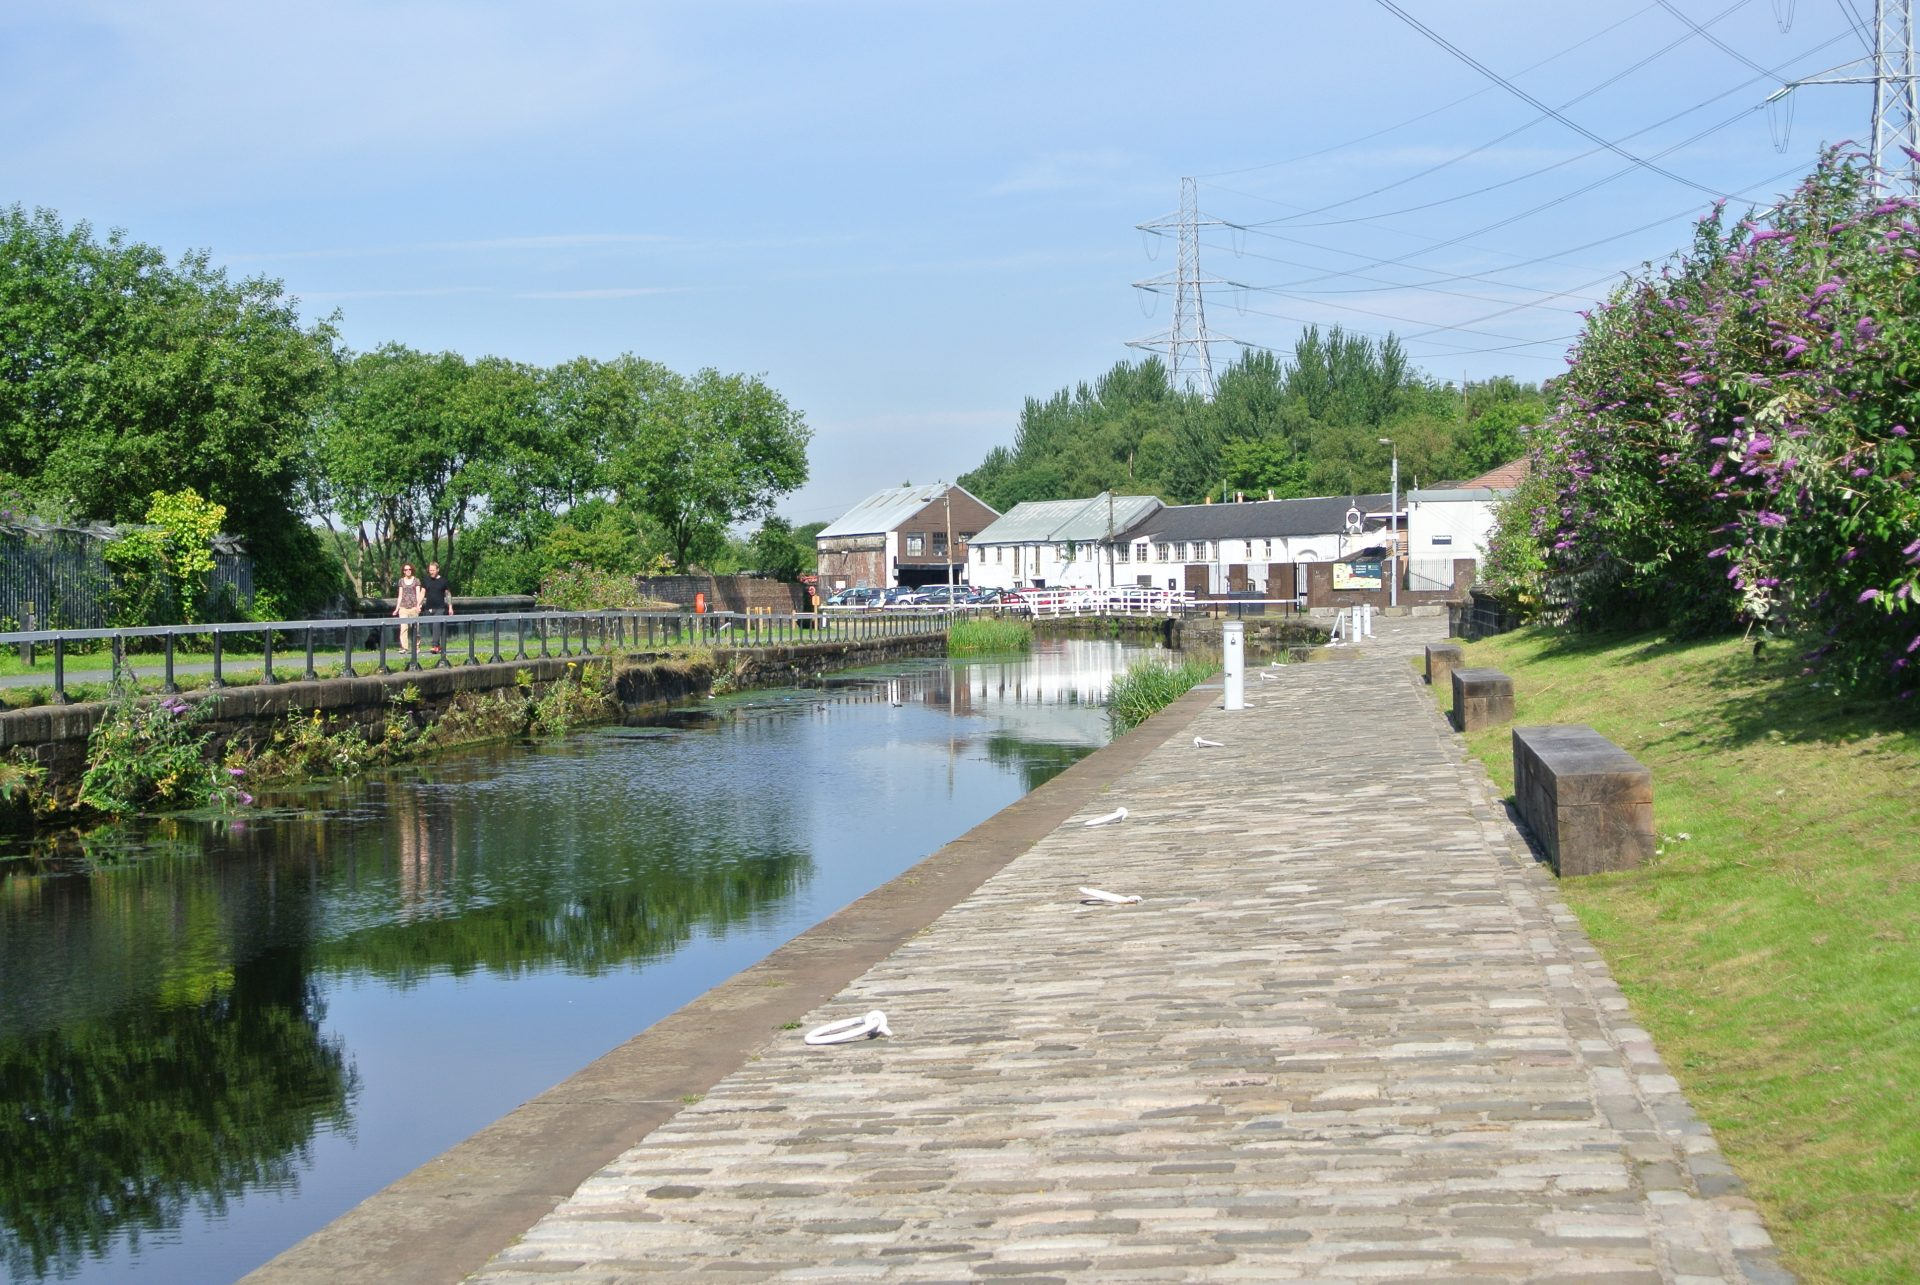 A view of the Forth & Clyde Canal, with towpath in foreground and buildings in the background